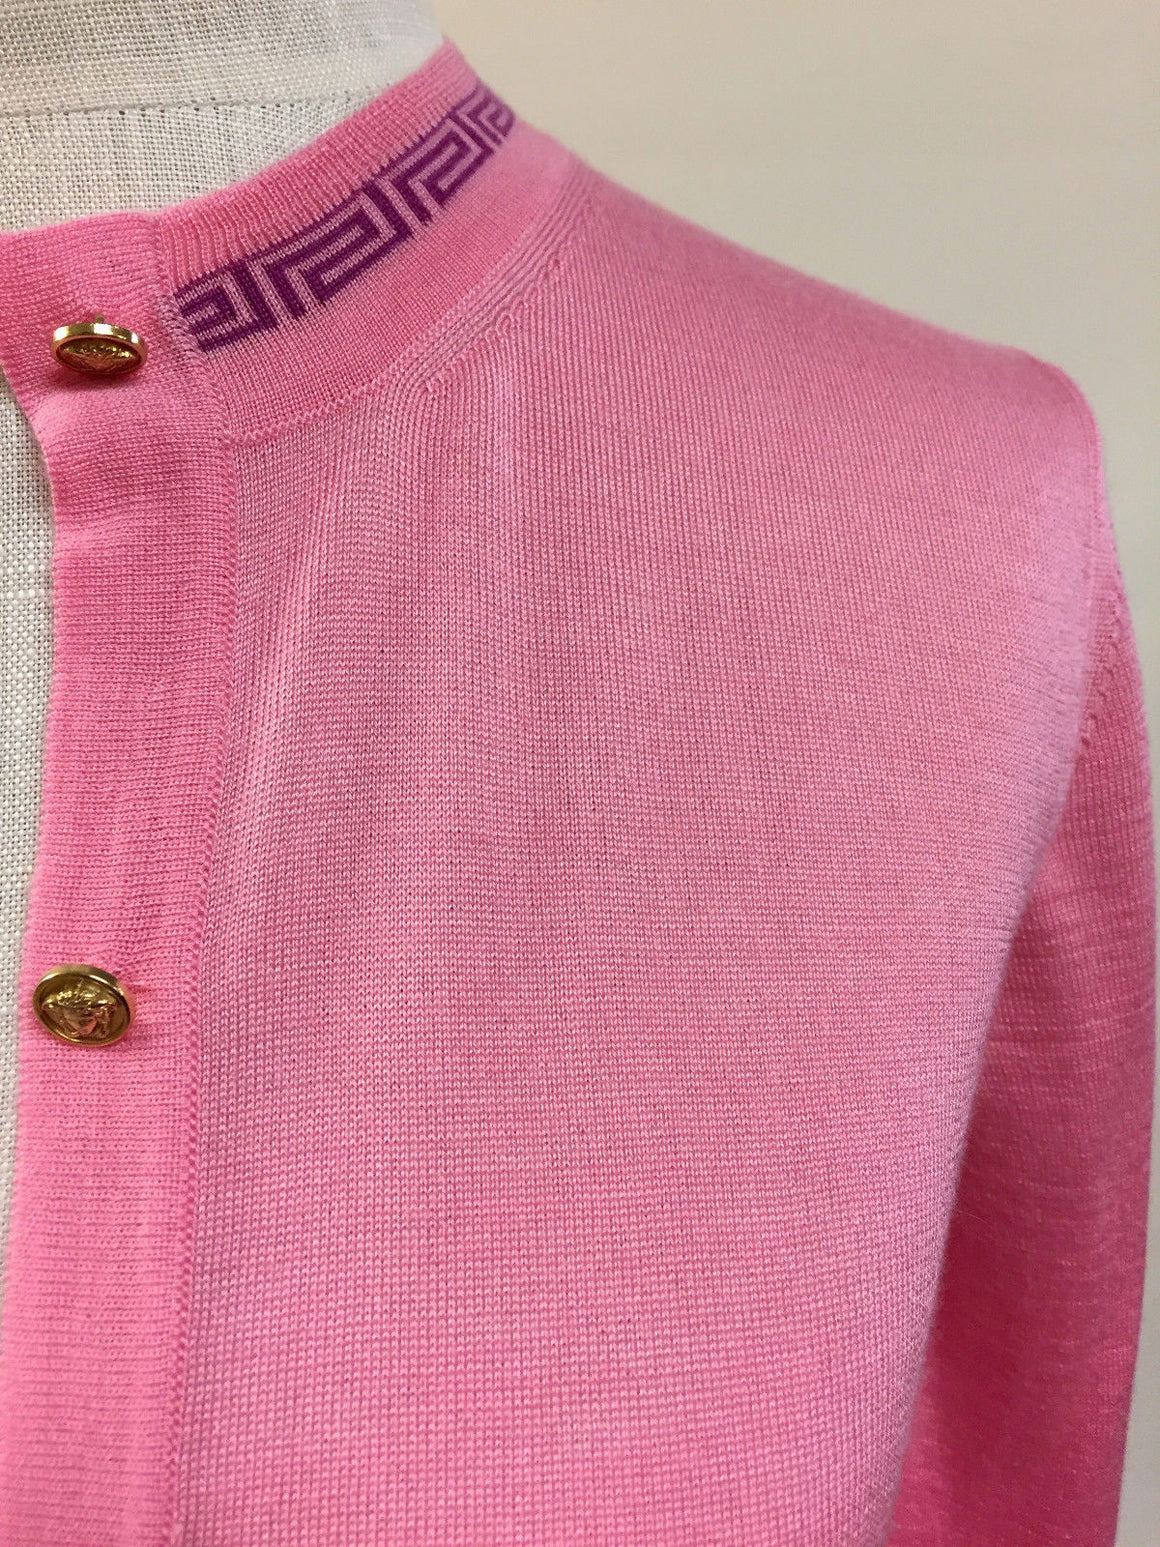 bisbiz.com VERSACE New with Tags BUBBLEGUM-PINK CASHMERE & SILK GOLD MEDUSA BUTTONS CARDIGAN SWEATER Size: Small - Bis Luxury Resale